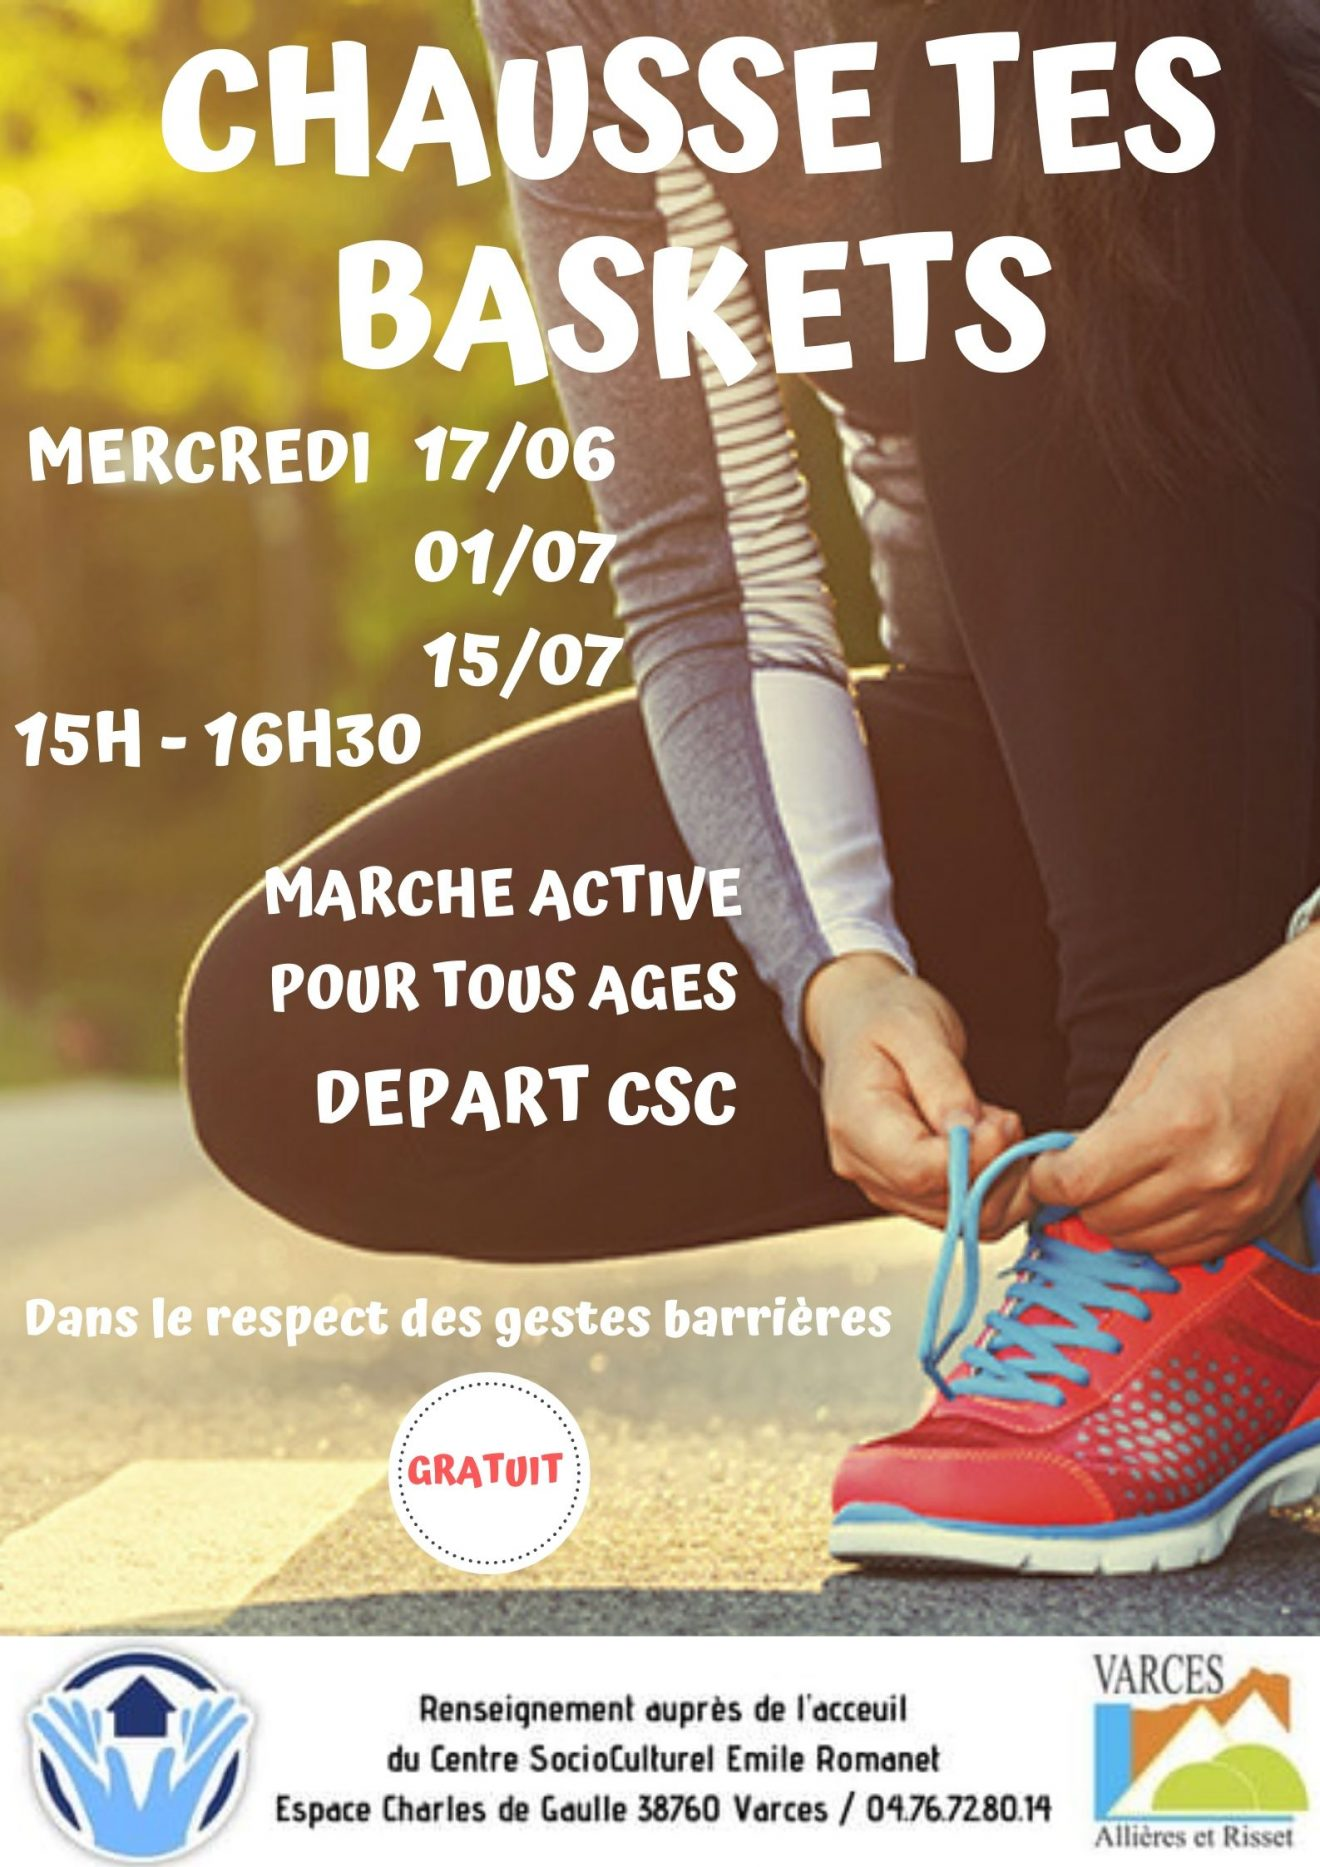 Chausses tes baskets(5)